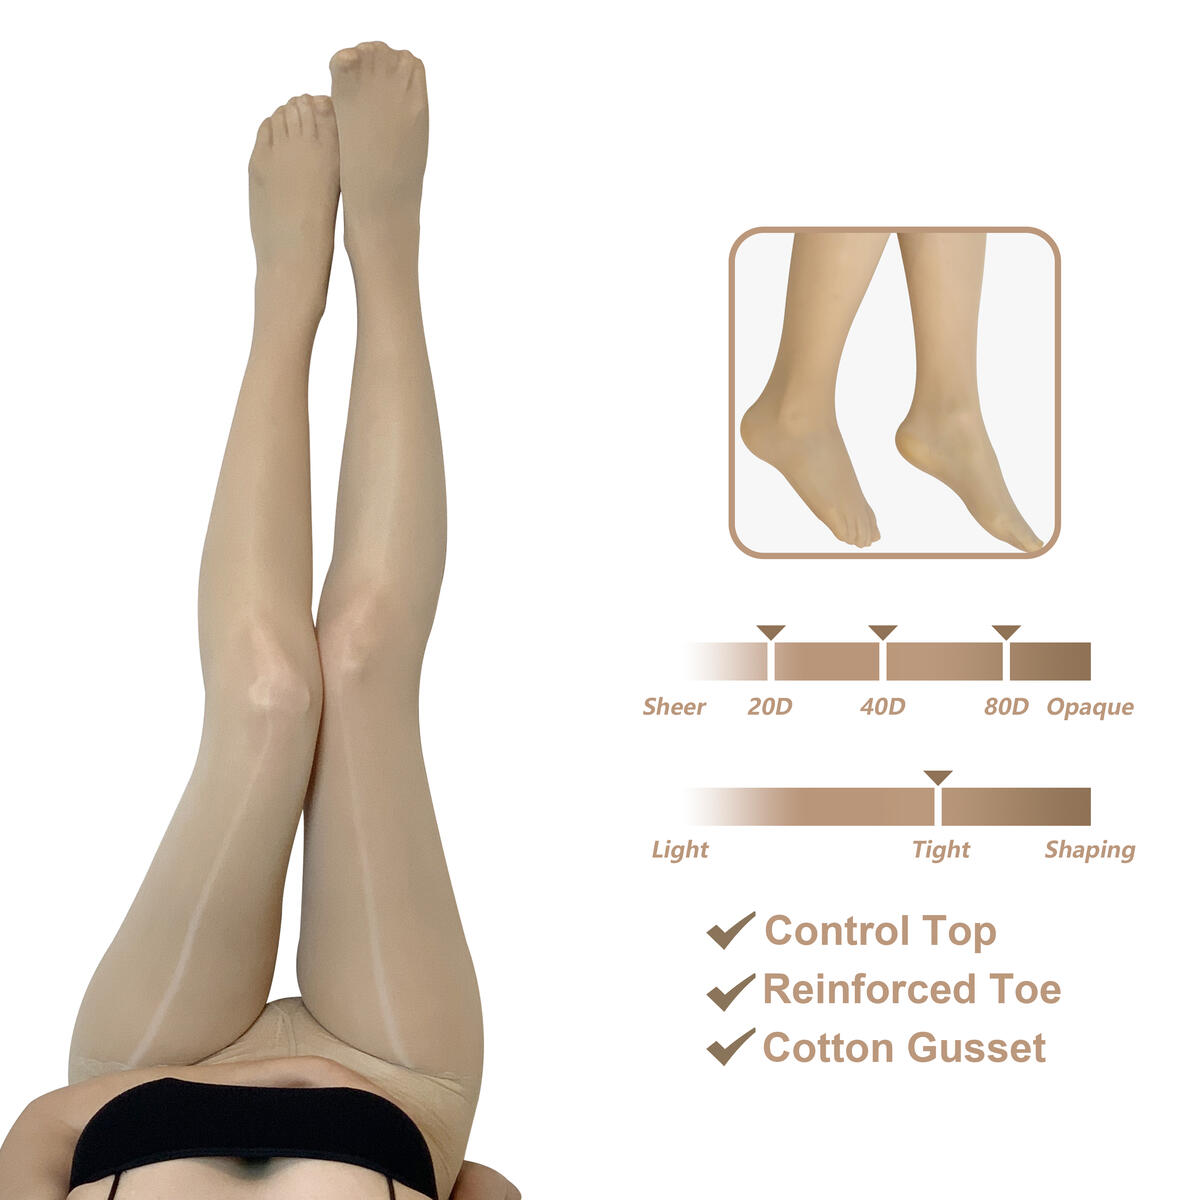 Tights for women Pantyhose Gift set Nylon Control Top Opaque Fashion Sheer Stocking Super Stretchy